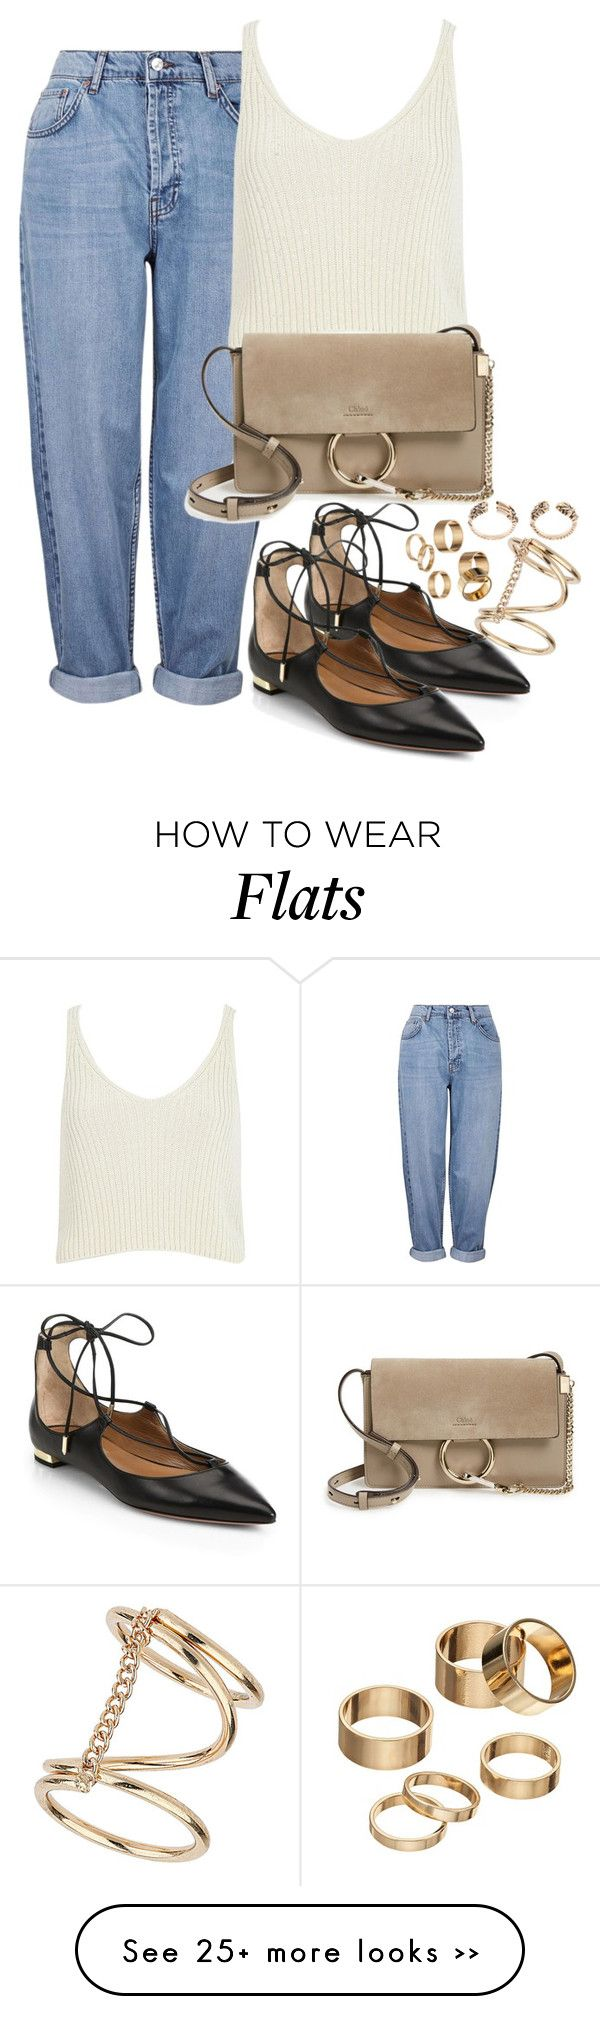 """""""Untitled #448"""" by fayeedaly on Polyvore featuring Topshop, River Island, Aquazzura, Chloé and Apt. 9"""